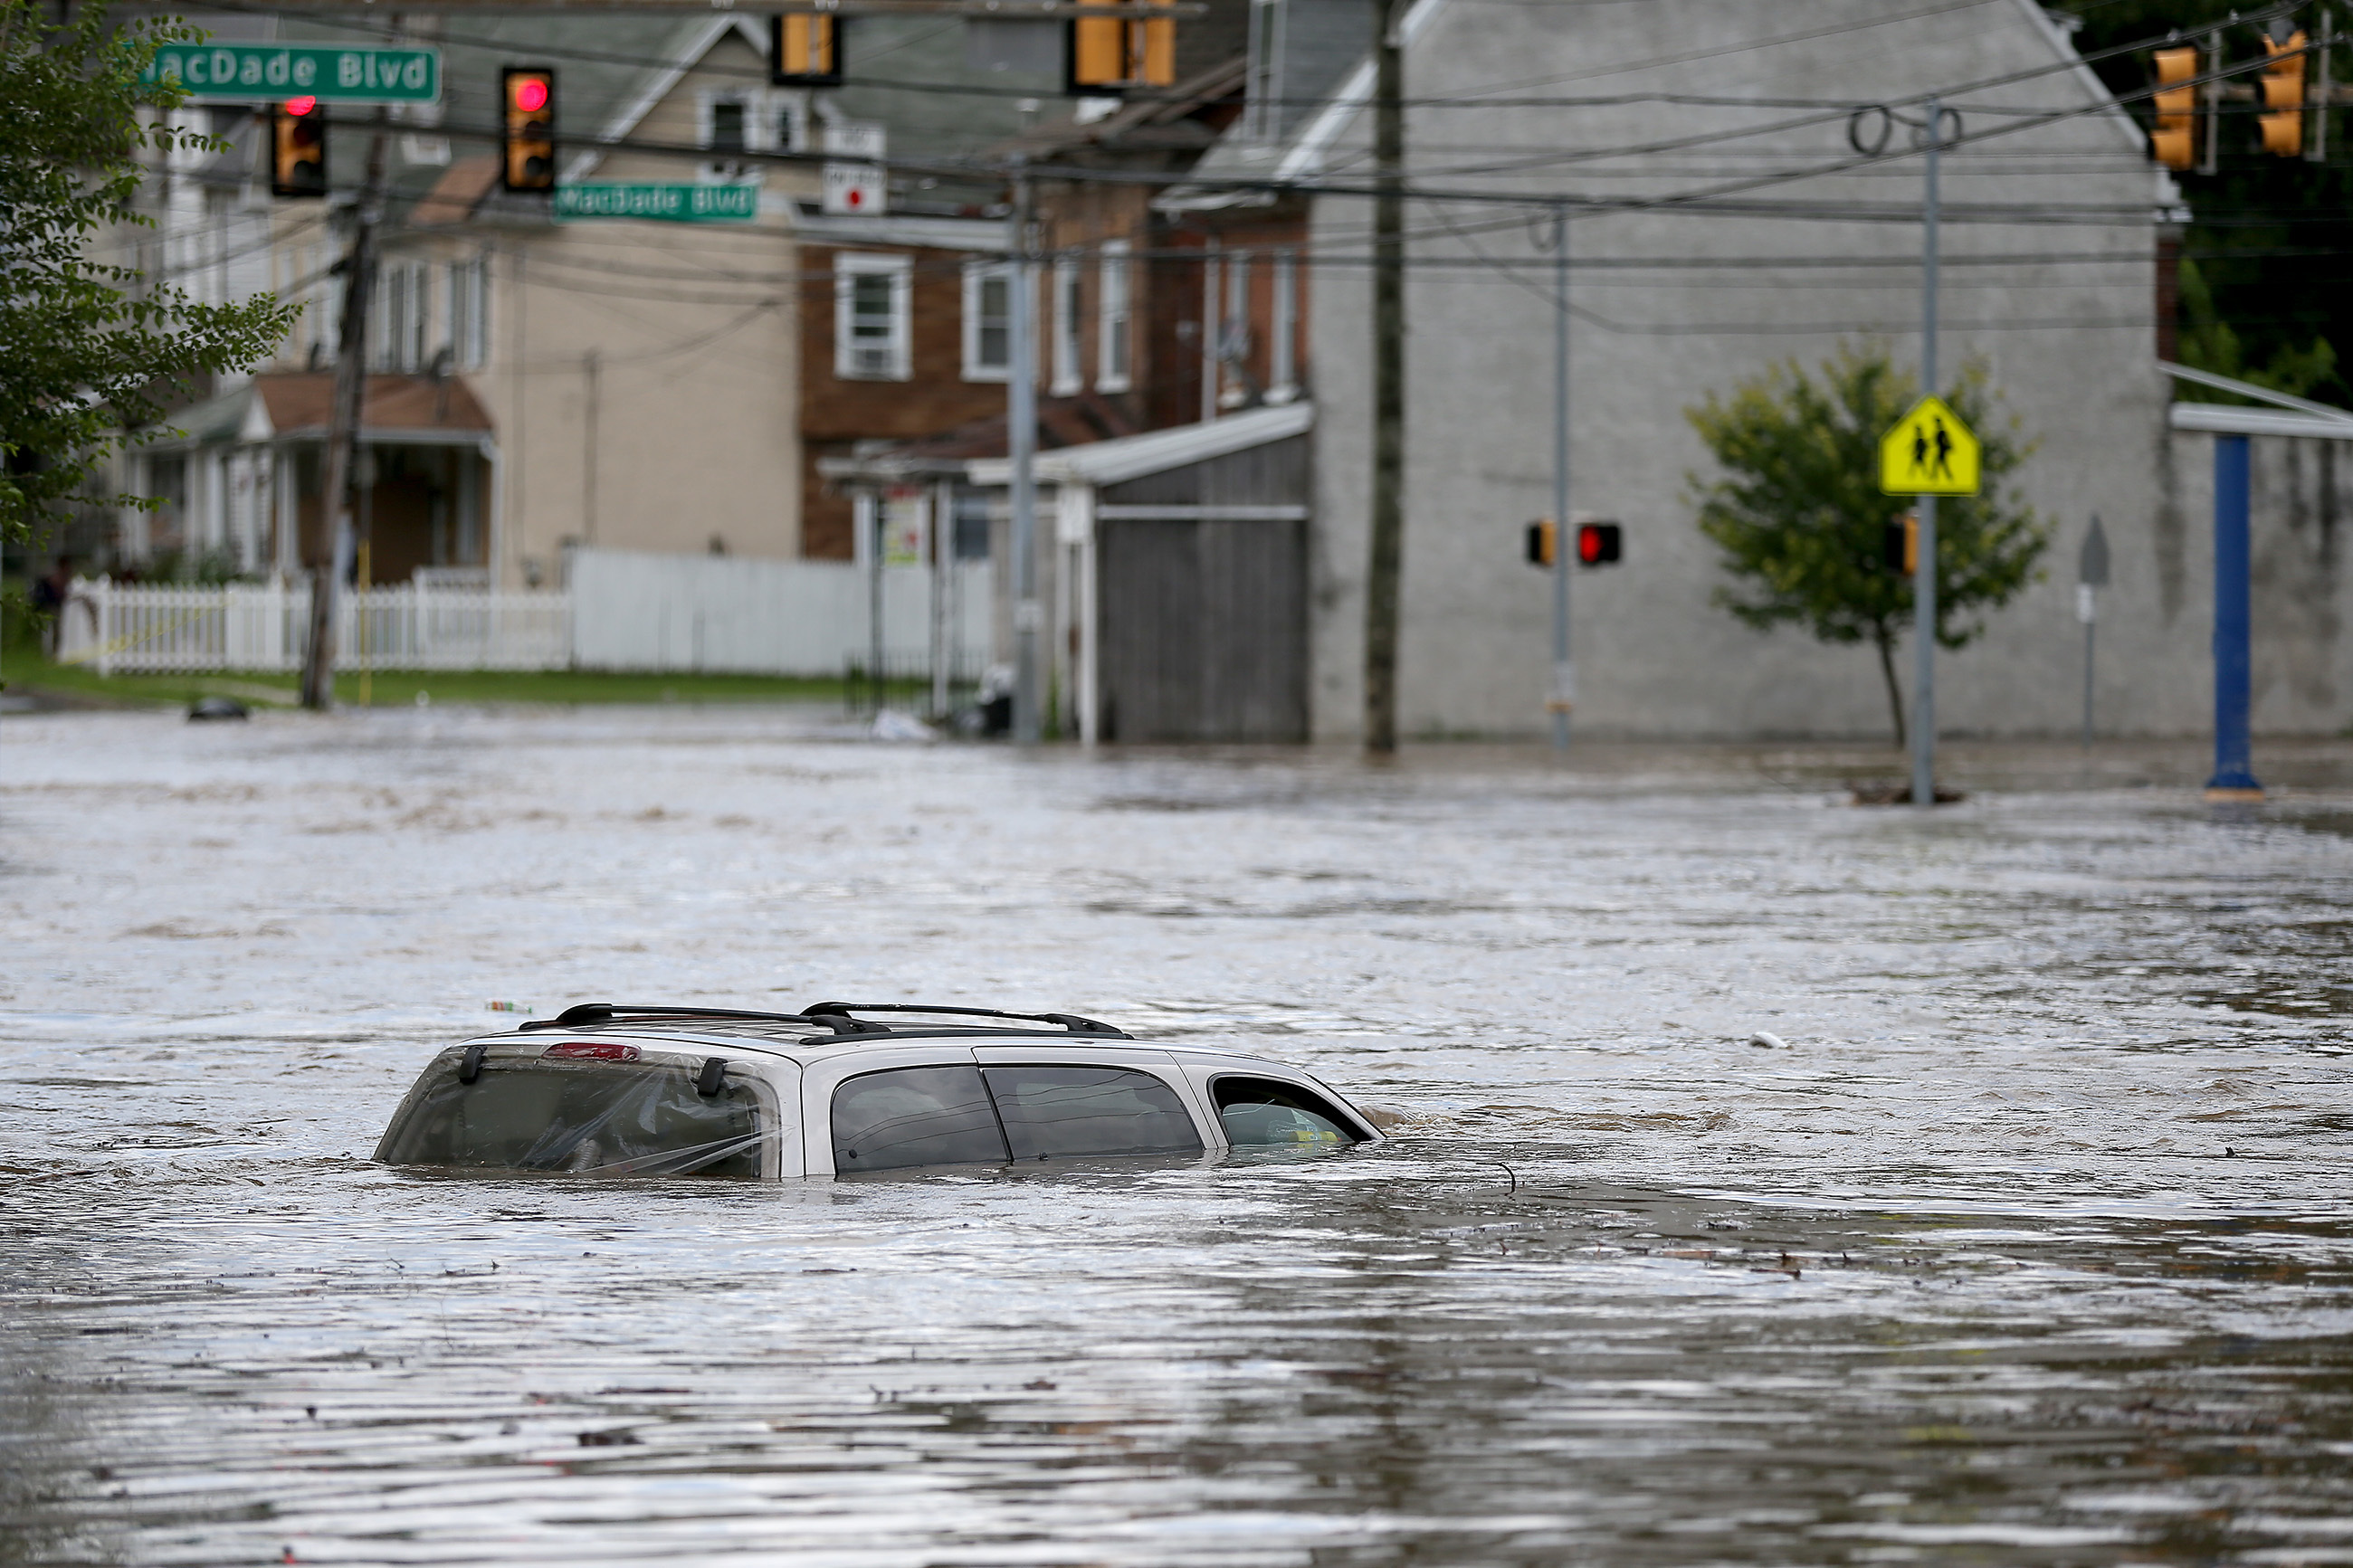 A vehicle sits in flood waters from Darby Creek on Springfield Road in Darby, PA on August 13, 2018.